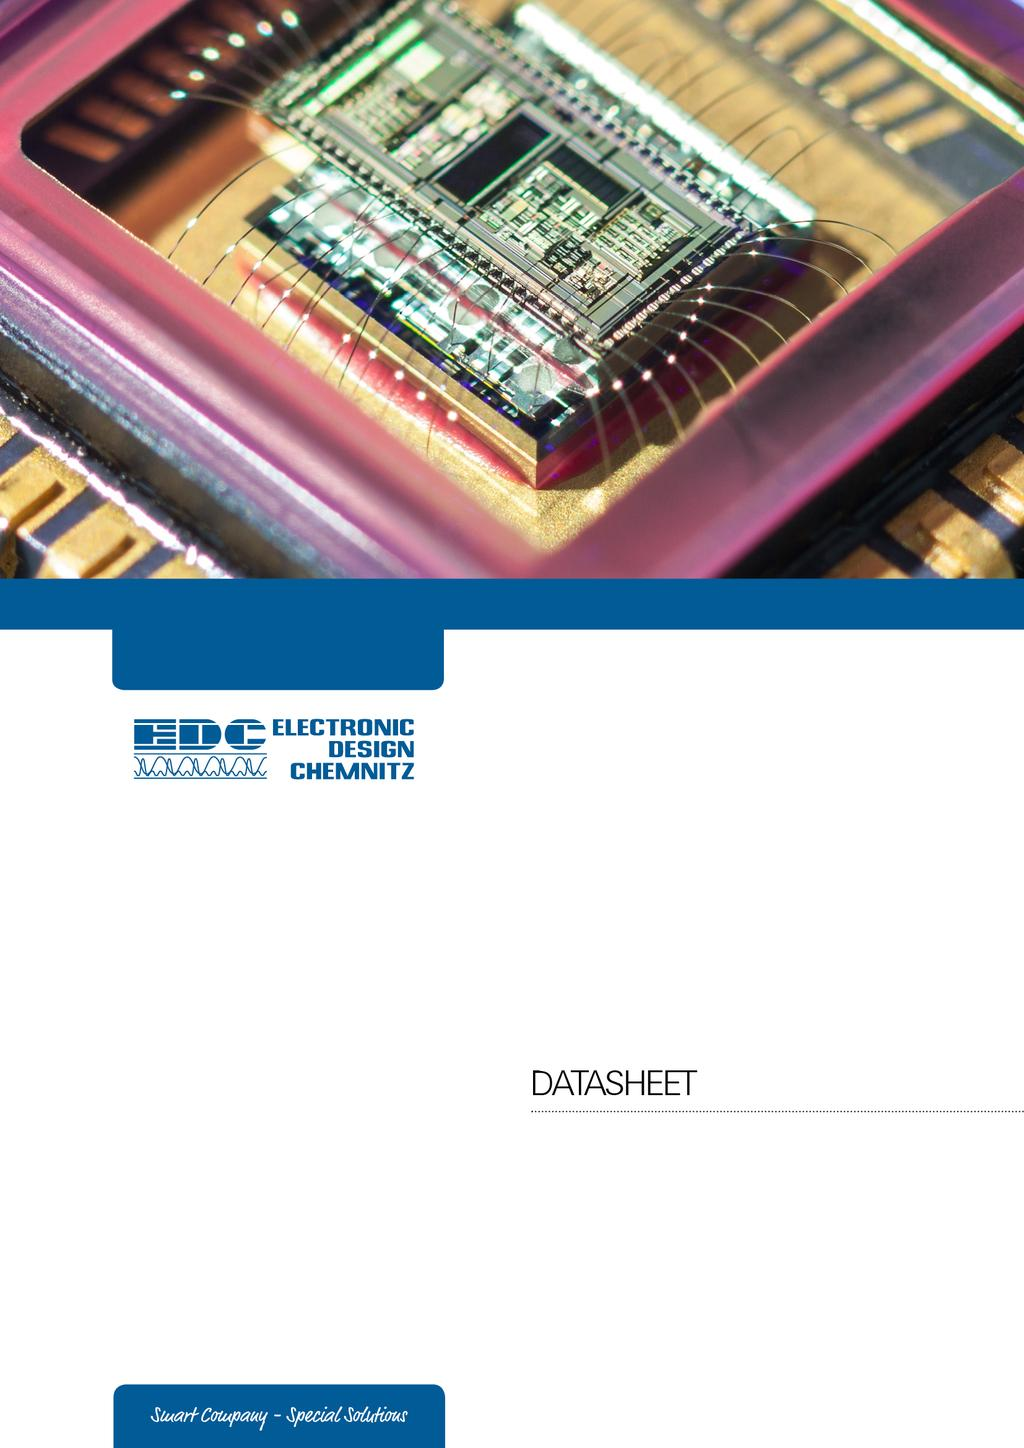 Application Note Edc Sm101 Inductive Proximity Sensor Ic Pdf Schematic Using Laser Diode And Lm386 Low Voltage Audio Amplifier Transcription